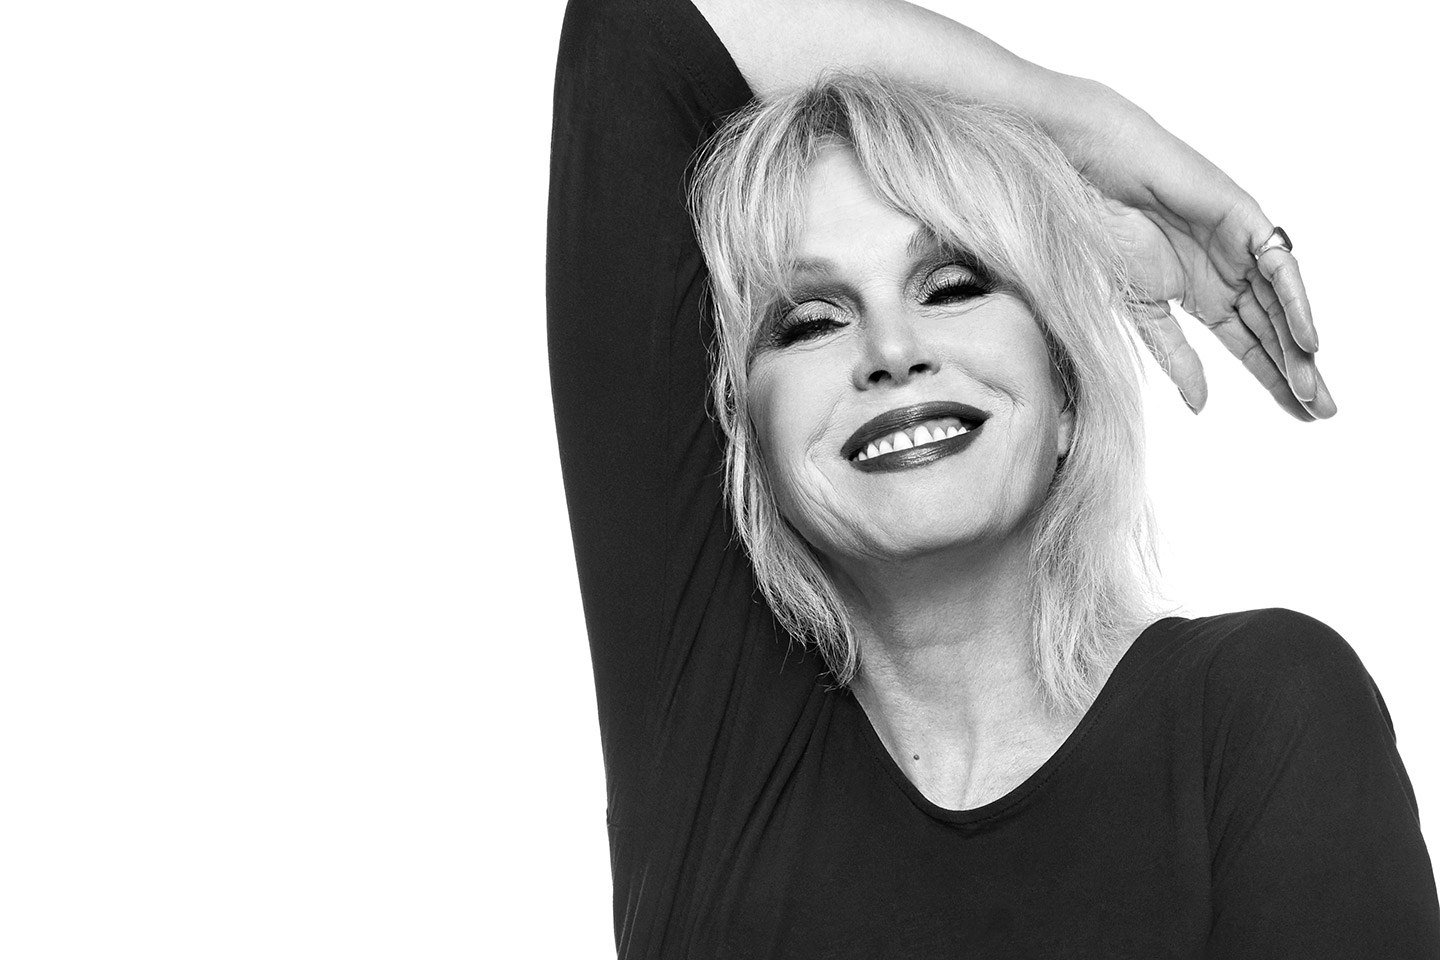 Joanna Lumley explains why the #AbFabMovie had to happen after 20 years https://t.co/yoVycGX0jB https://t.co/PdyzXCNKmJ